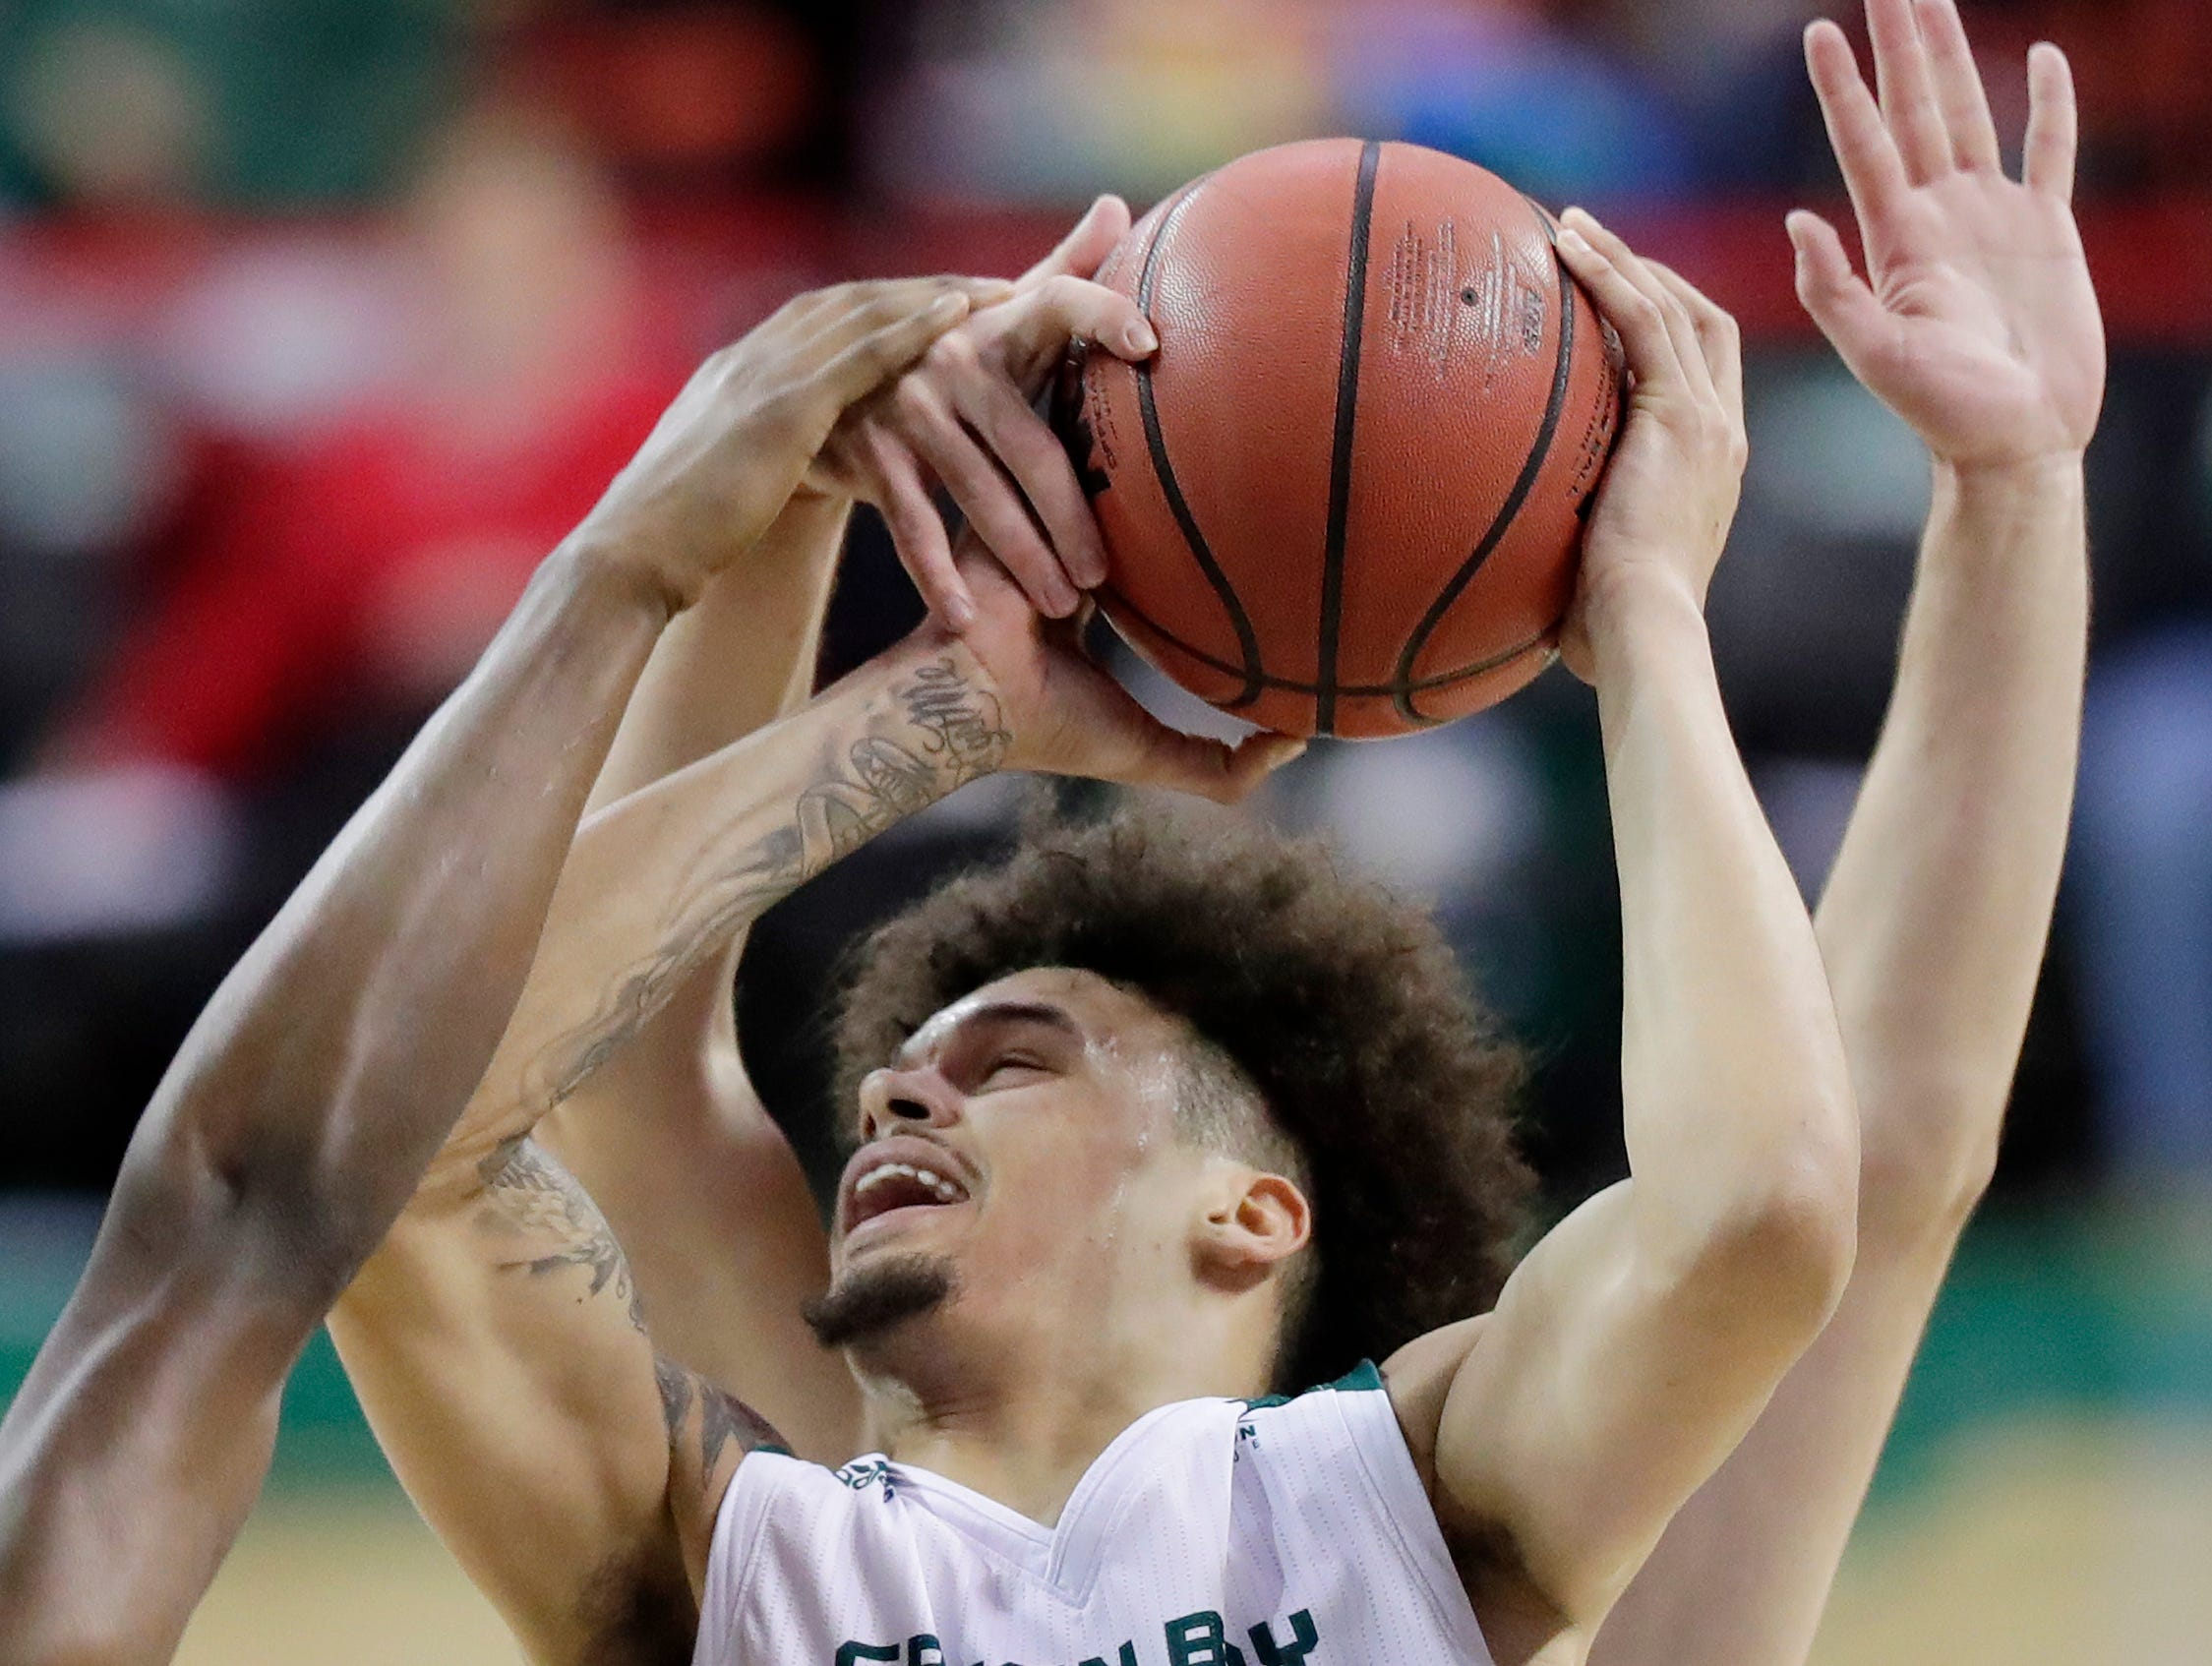 Green Bay Phoenix guard Trevian Bell (13) drwas a foul against the Cleveland State Vikings in a Horizon League basketball game at the Resch Center on Saturday, January 5, 2019 in Green Bay, Wis.